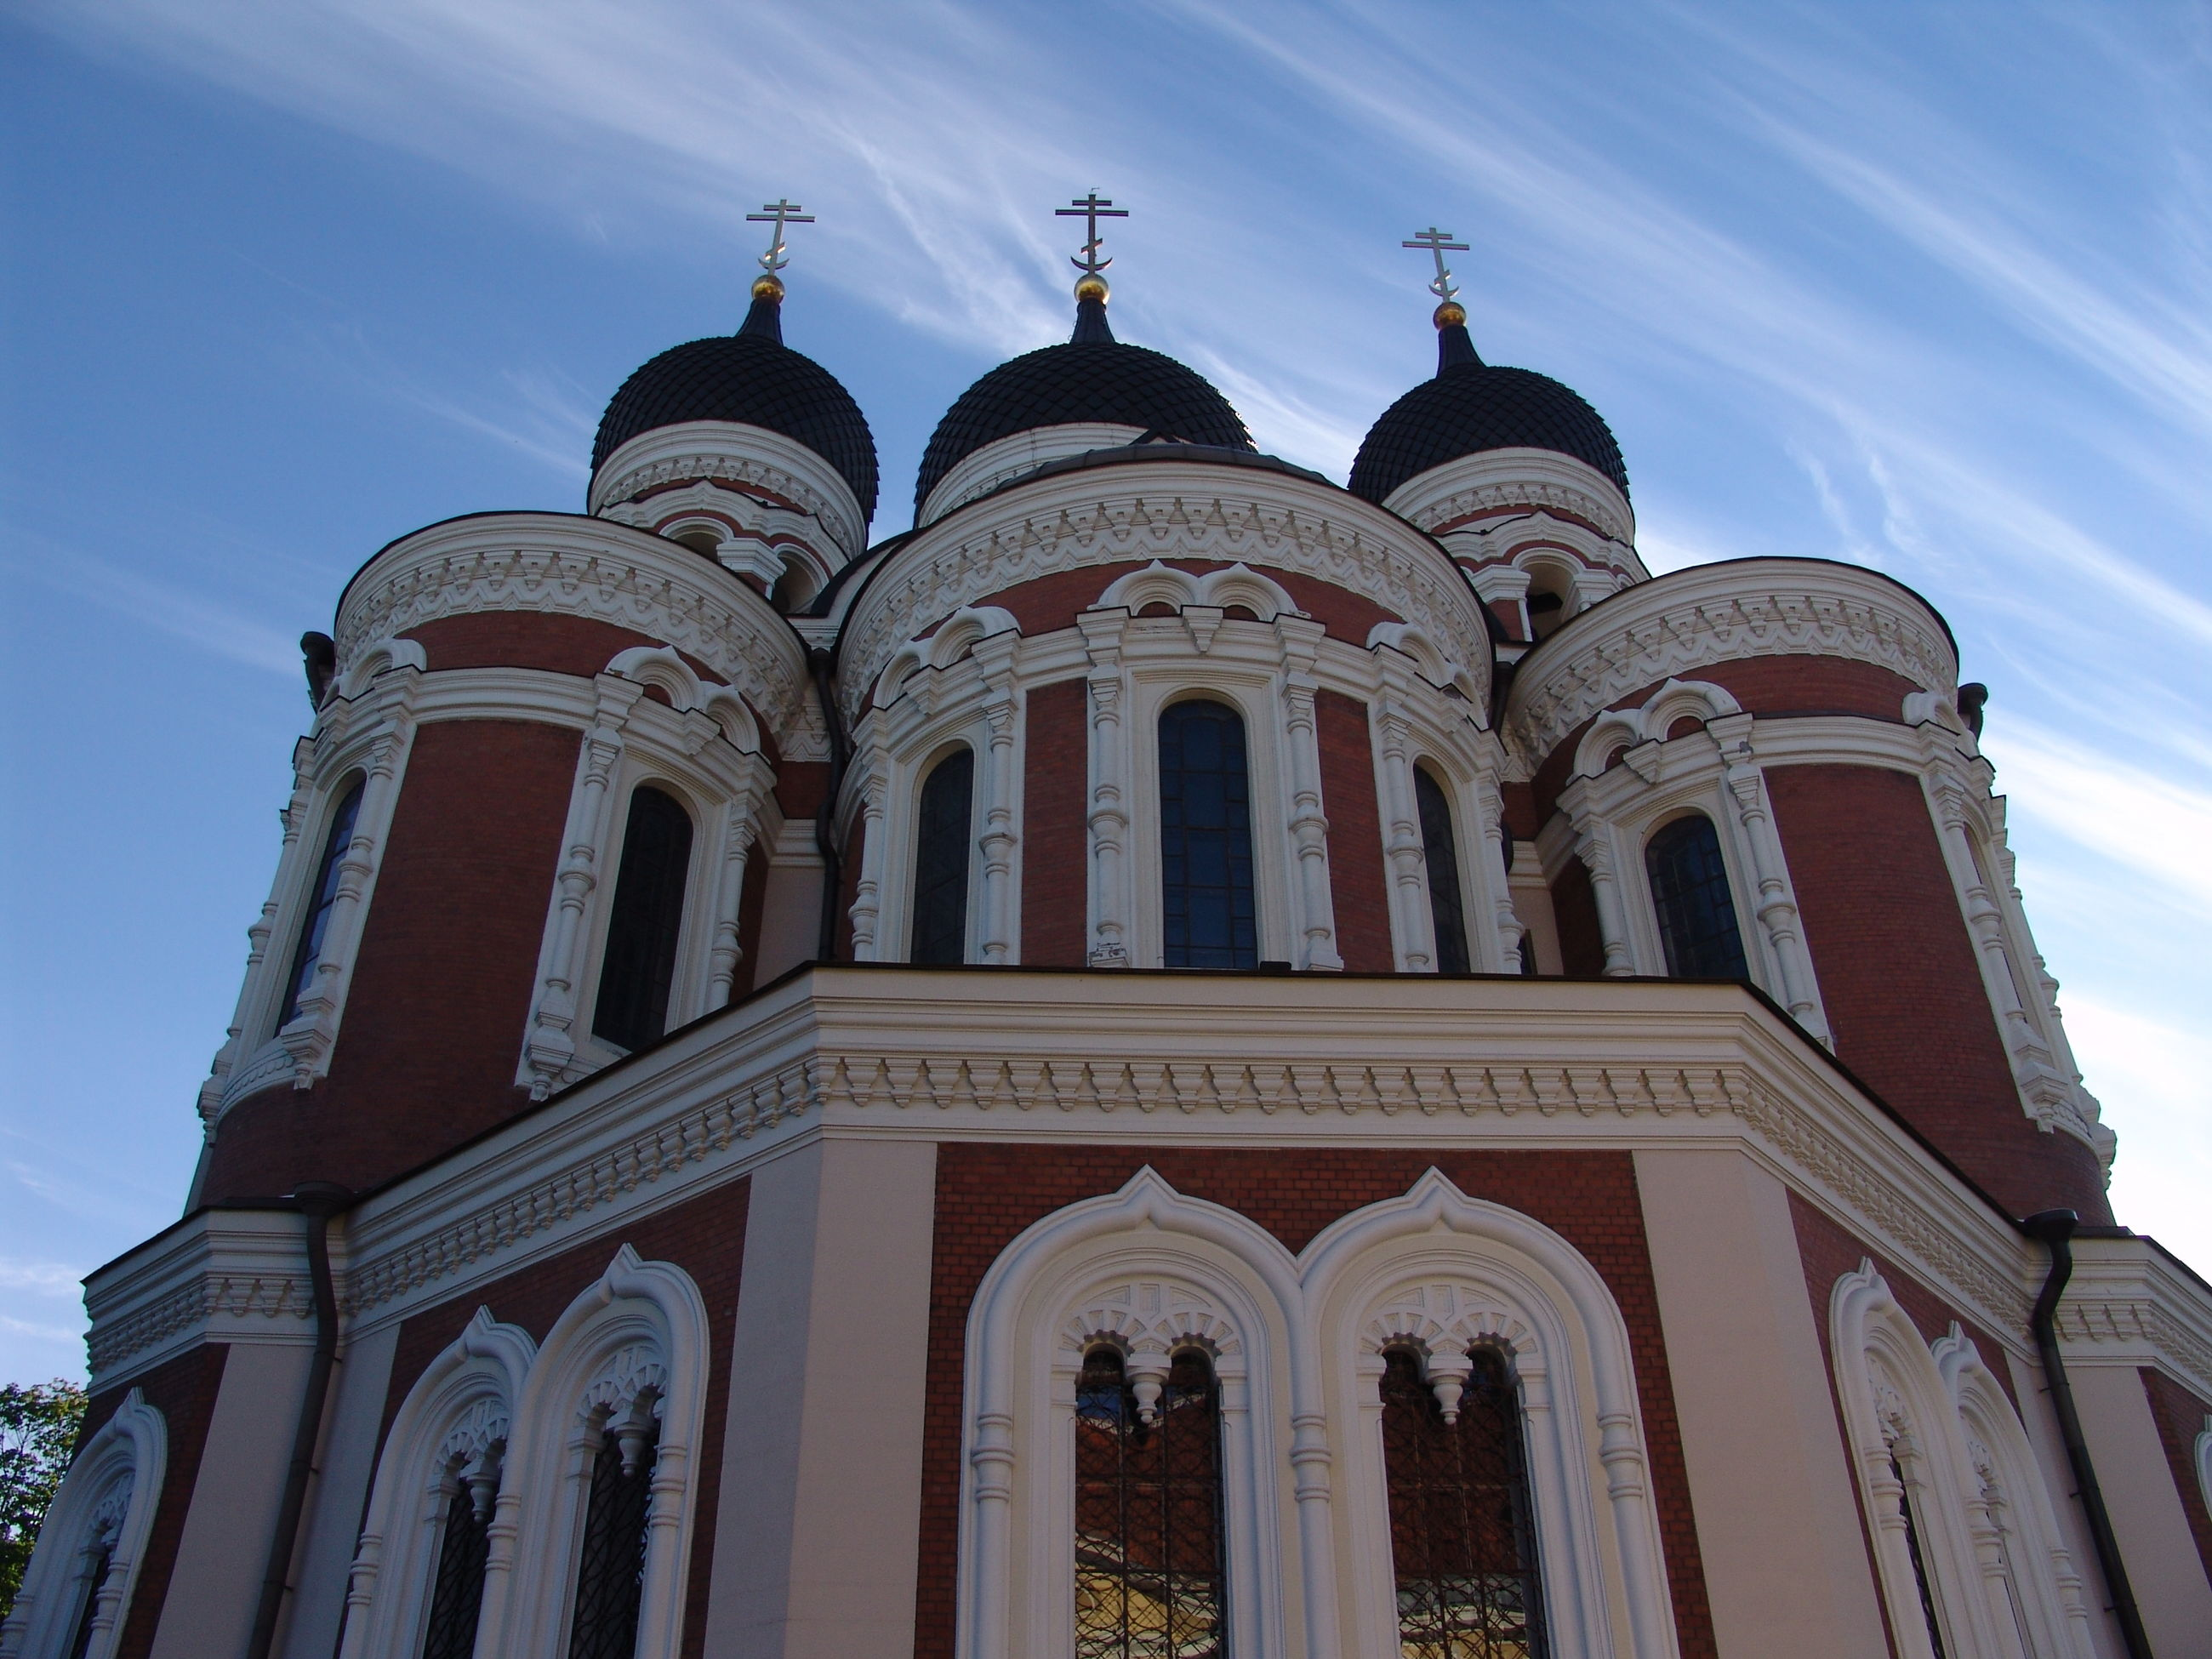 architecture, built structure, low angle view, building exterior, sky, church, religion, place of worship, dome, arch, spirituality, travel destinations, facade, famous place, blue, history, cathedral, outdoors